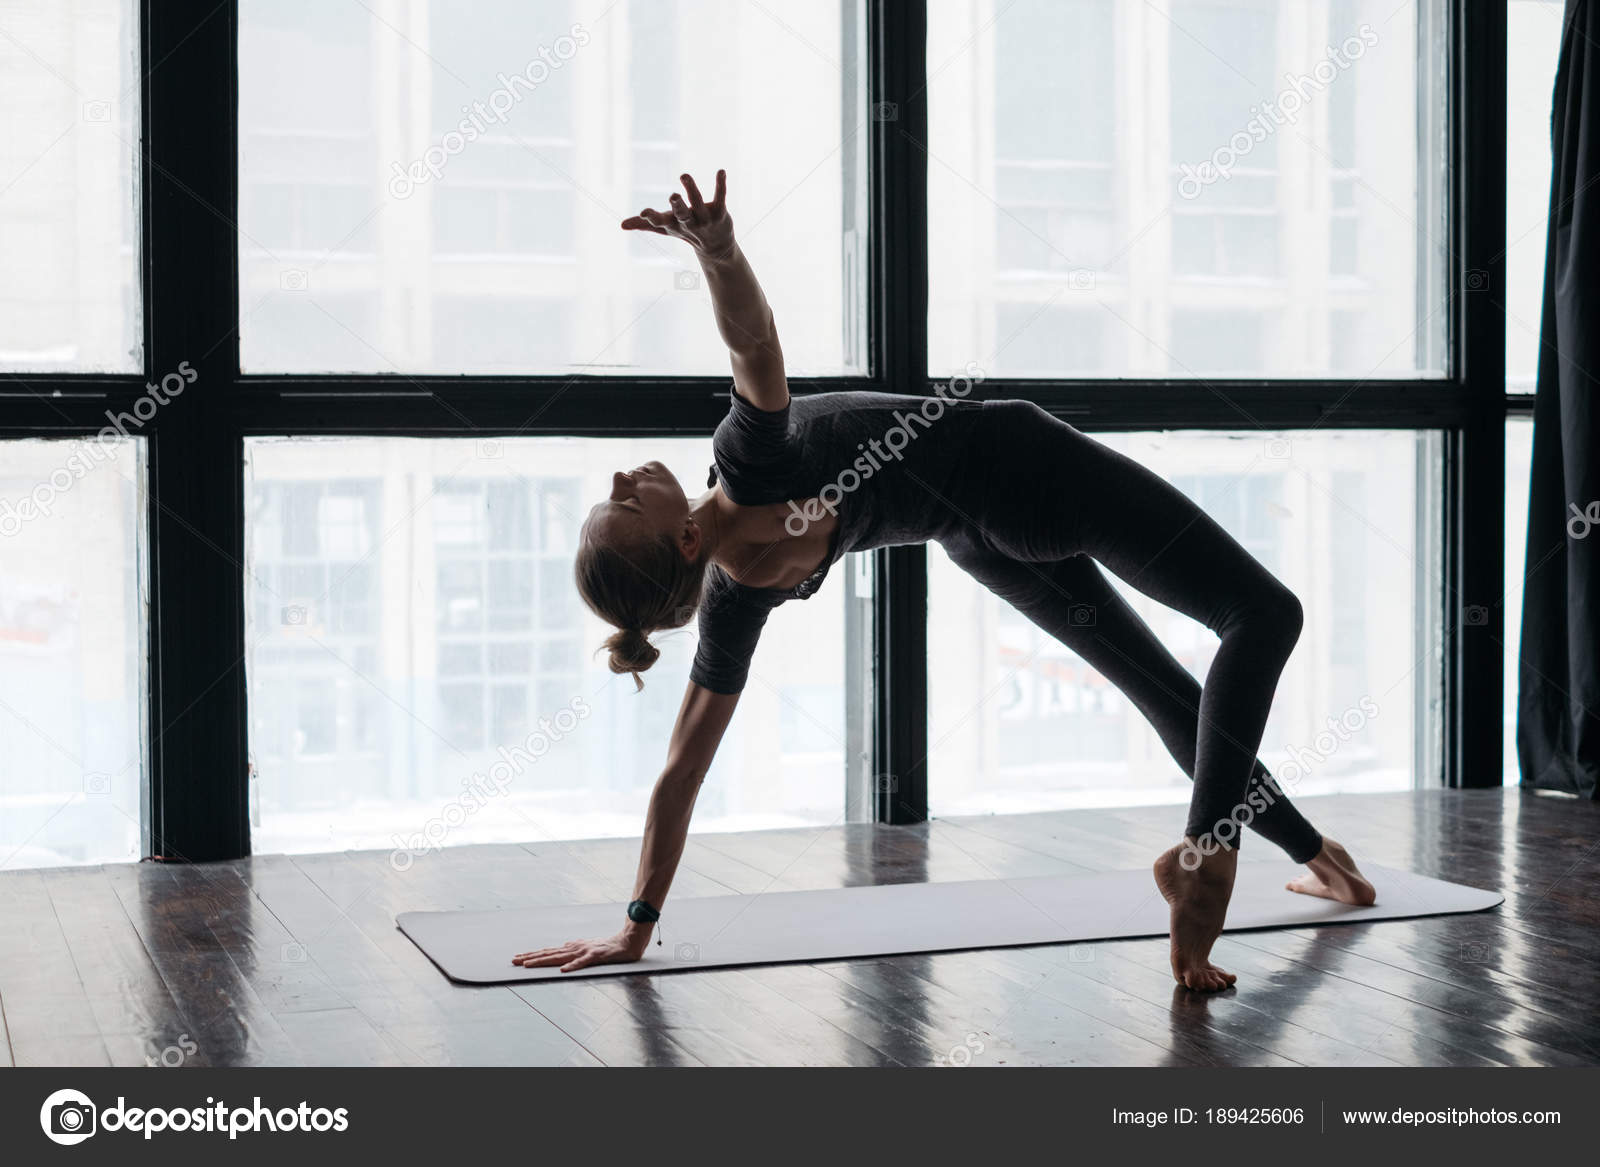 13f07d0892a7 Young Flexible Sporty Woman Practicing Yoga Windows Wooden Floor — Stock  Photo